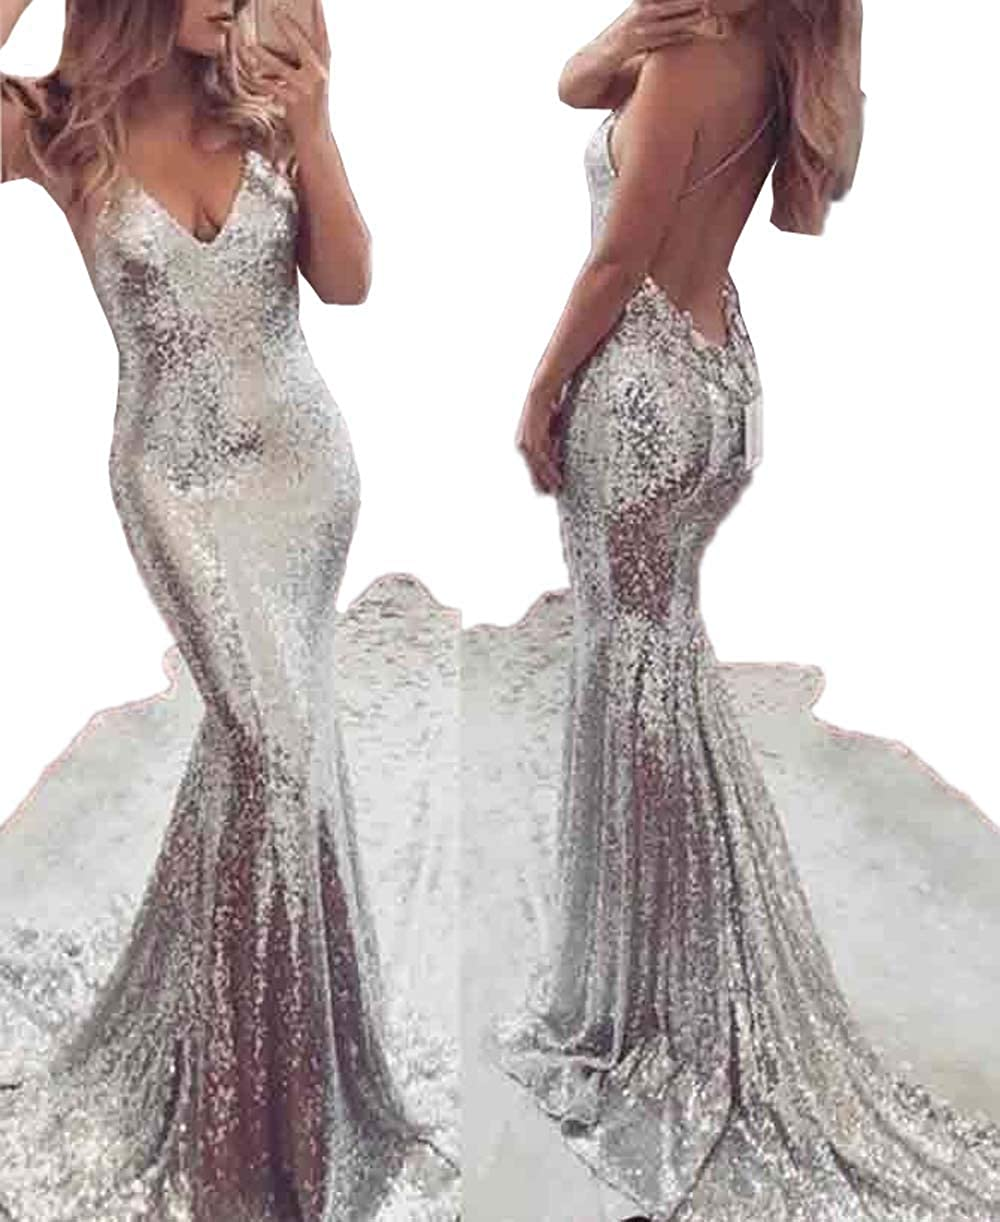 dd7b70cfa528 USGreatgorgeous Women Silver Sequined Long Mermaid Spaghetti Straps V Neck  Backless Prom Cocktail Gown Evening Dress at Amazon Women's Clothing store: